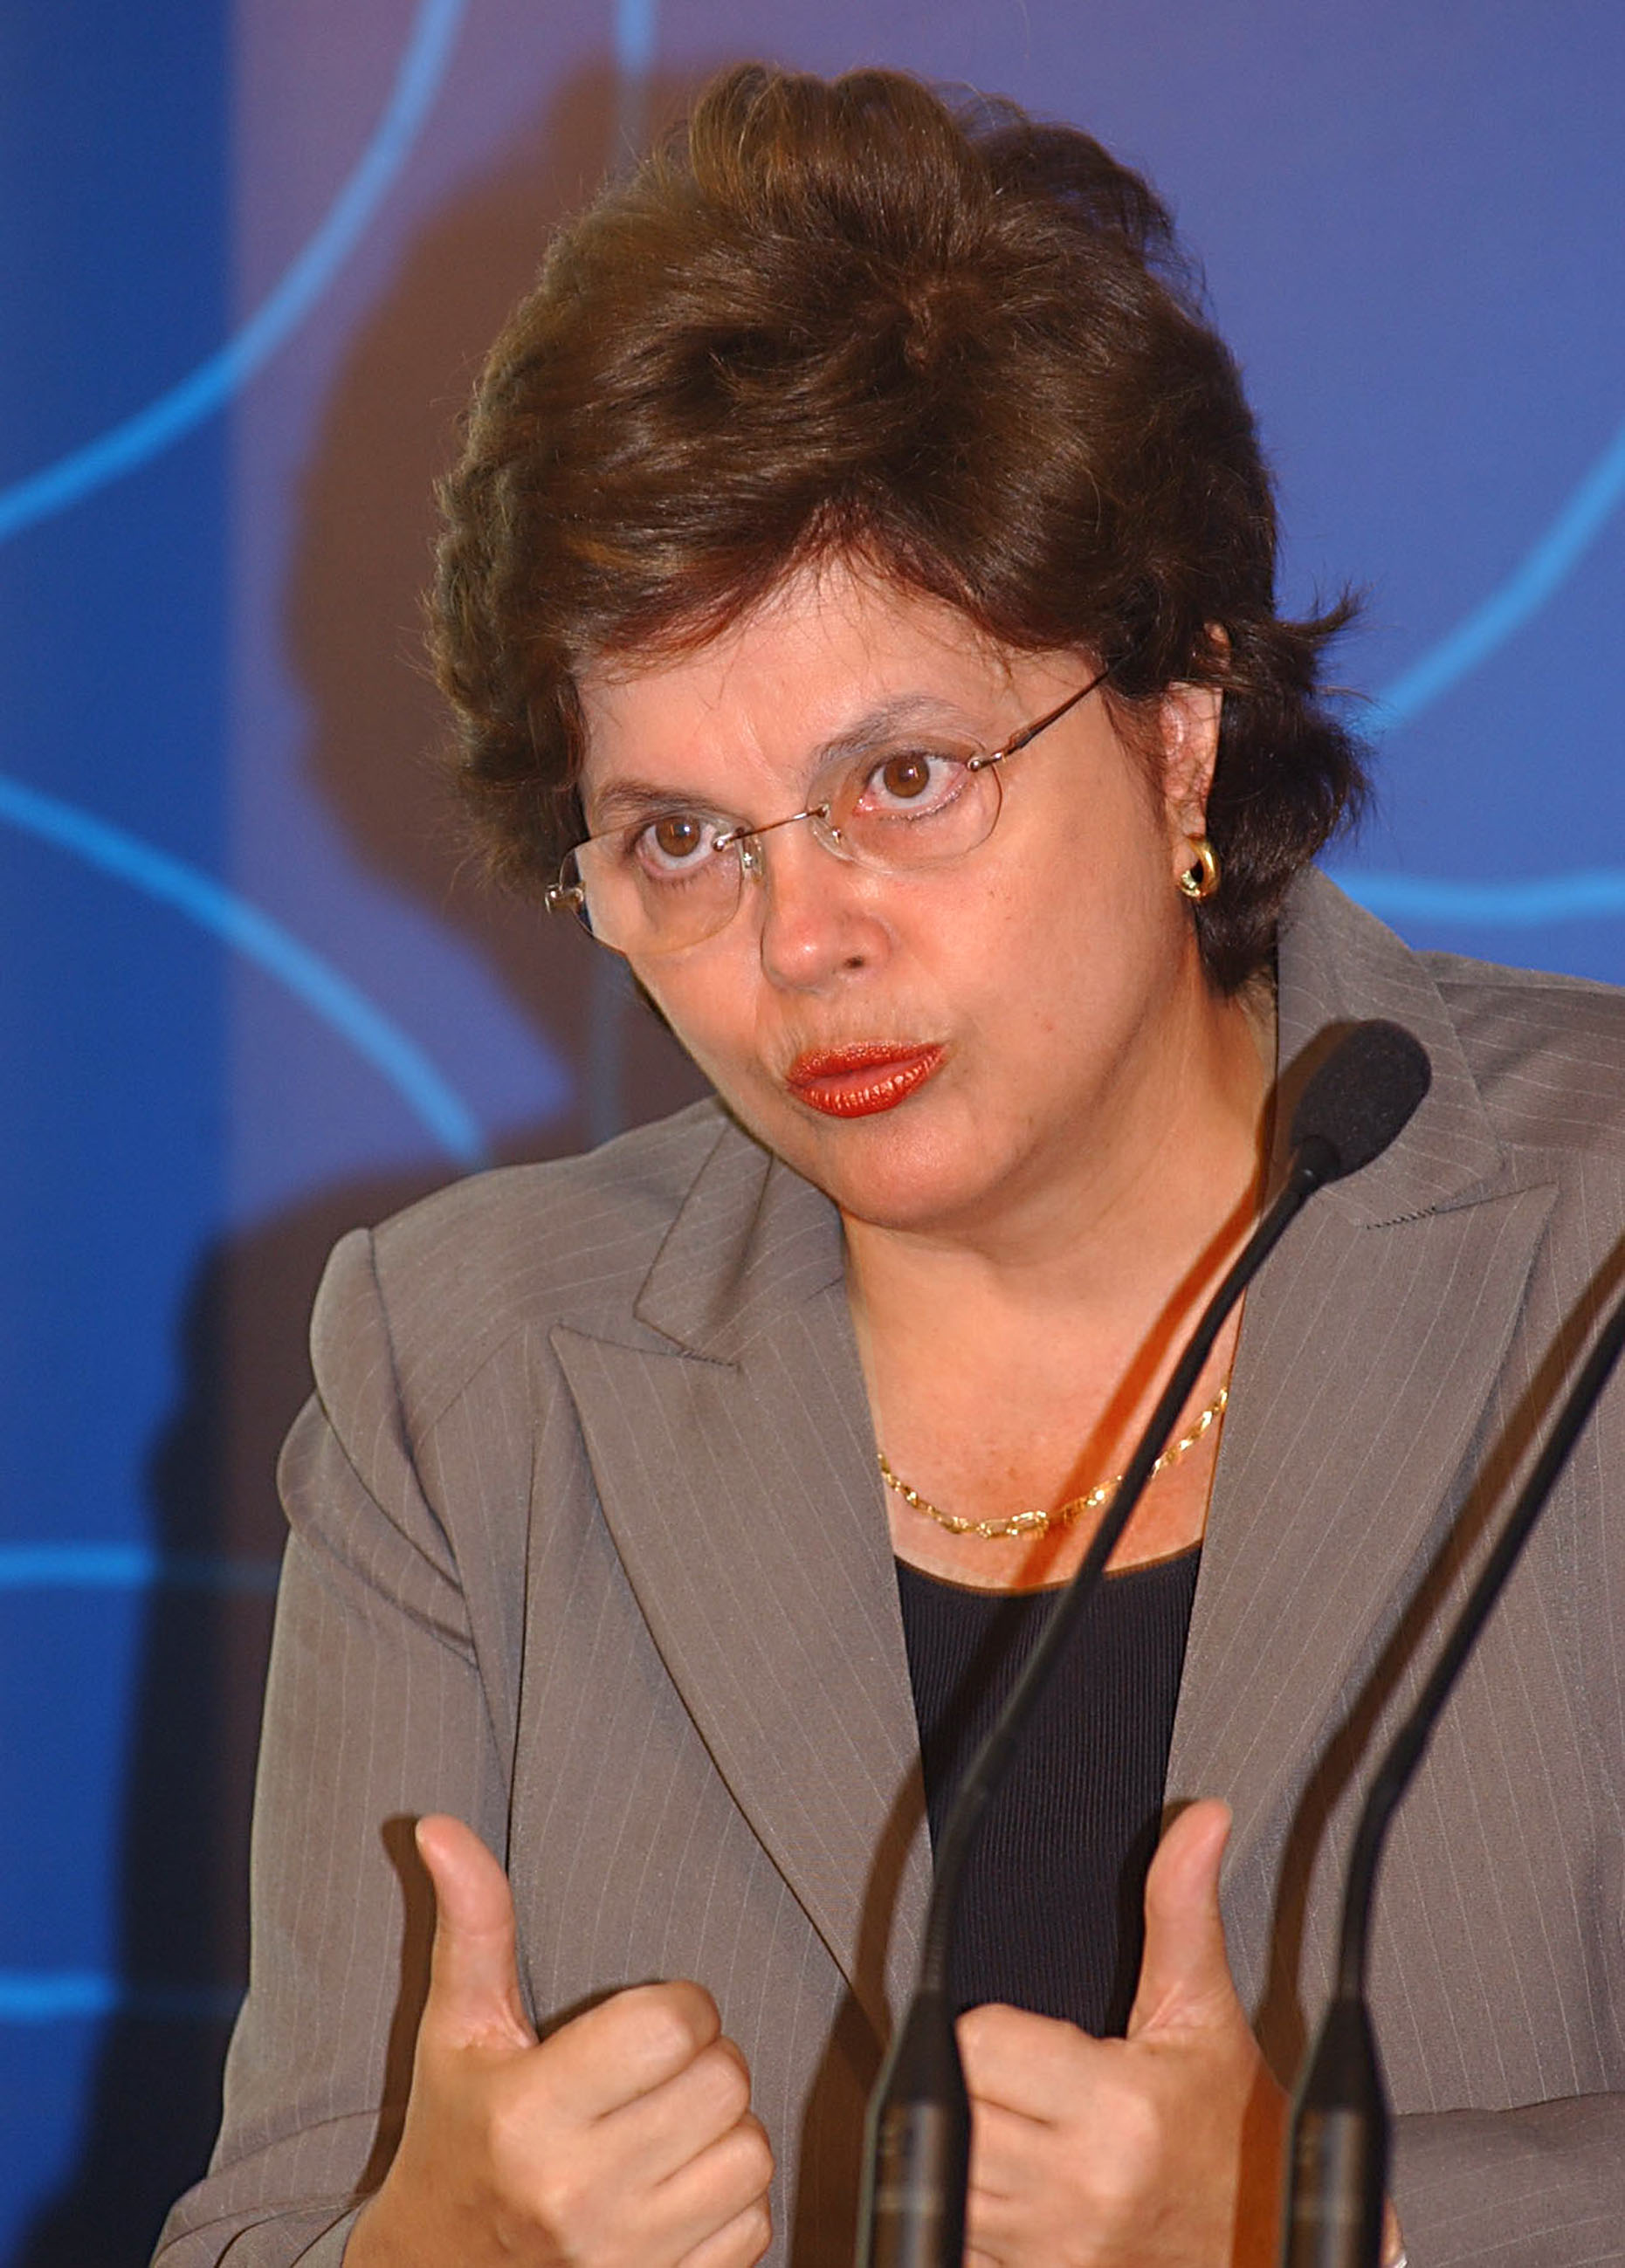 http://upload.wikimedia.org/wikipedia/commons/a/aa/Dilma_Rousseff.jpeg